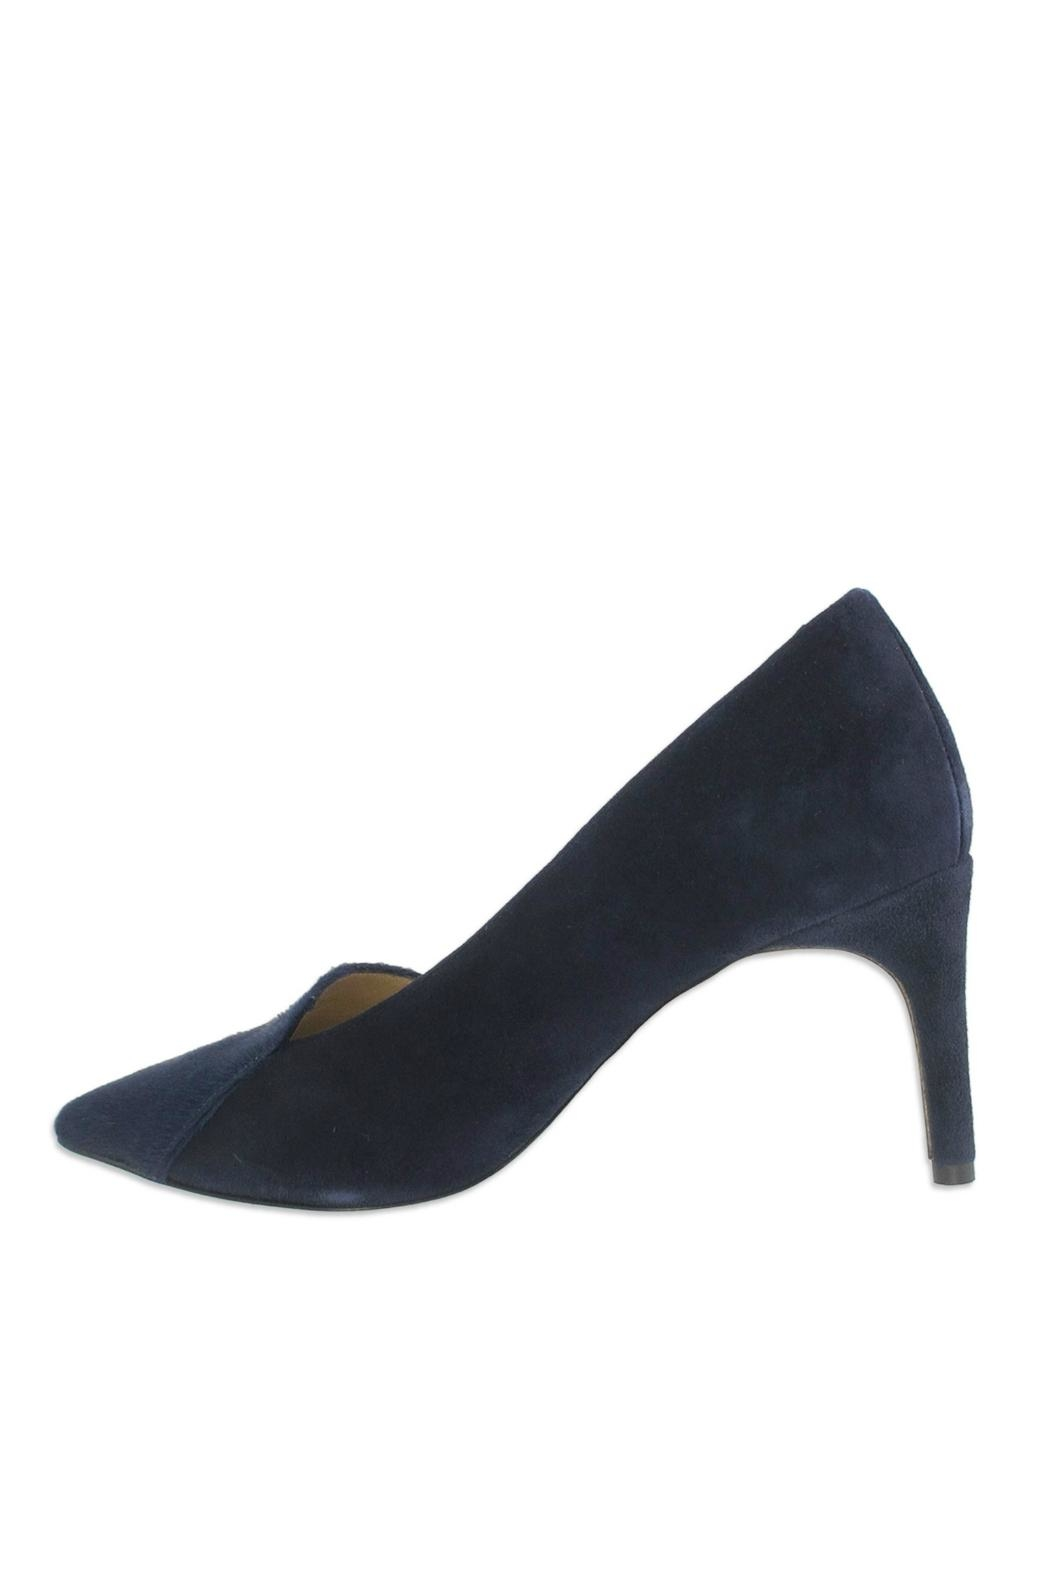 Ron White Cadence Navy Pump - Main Image